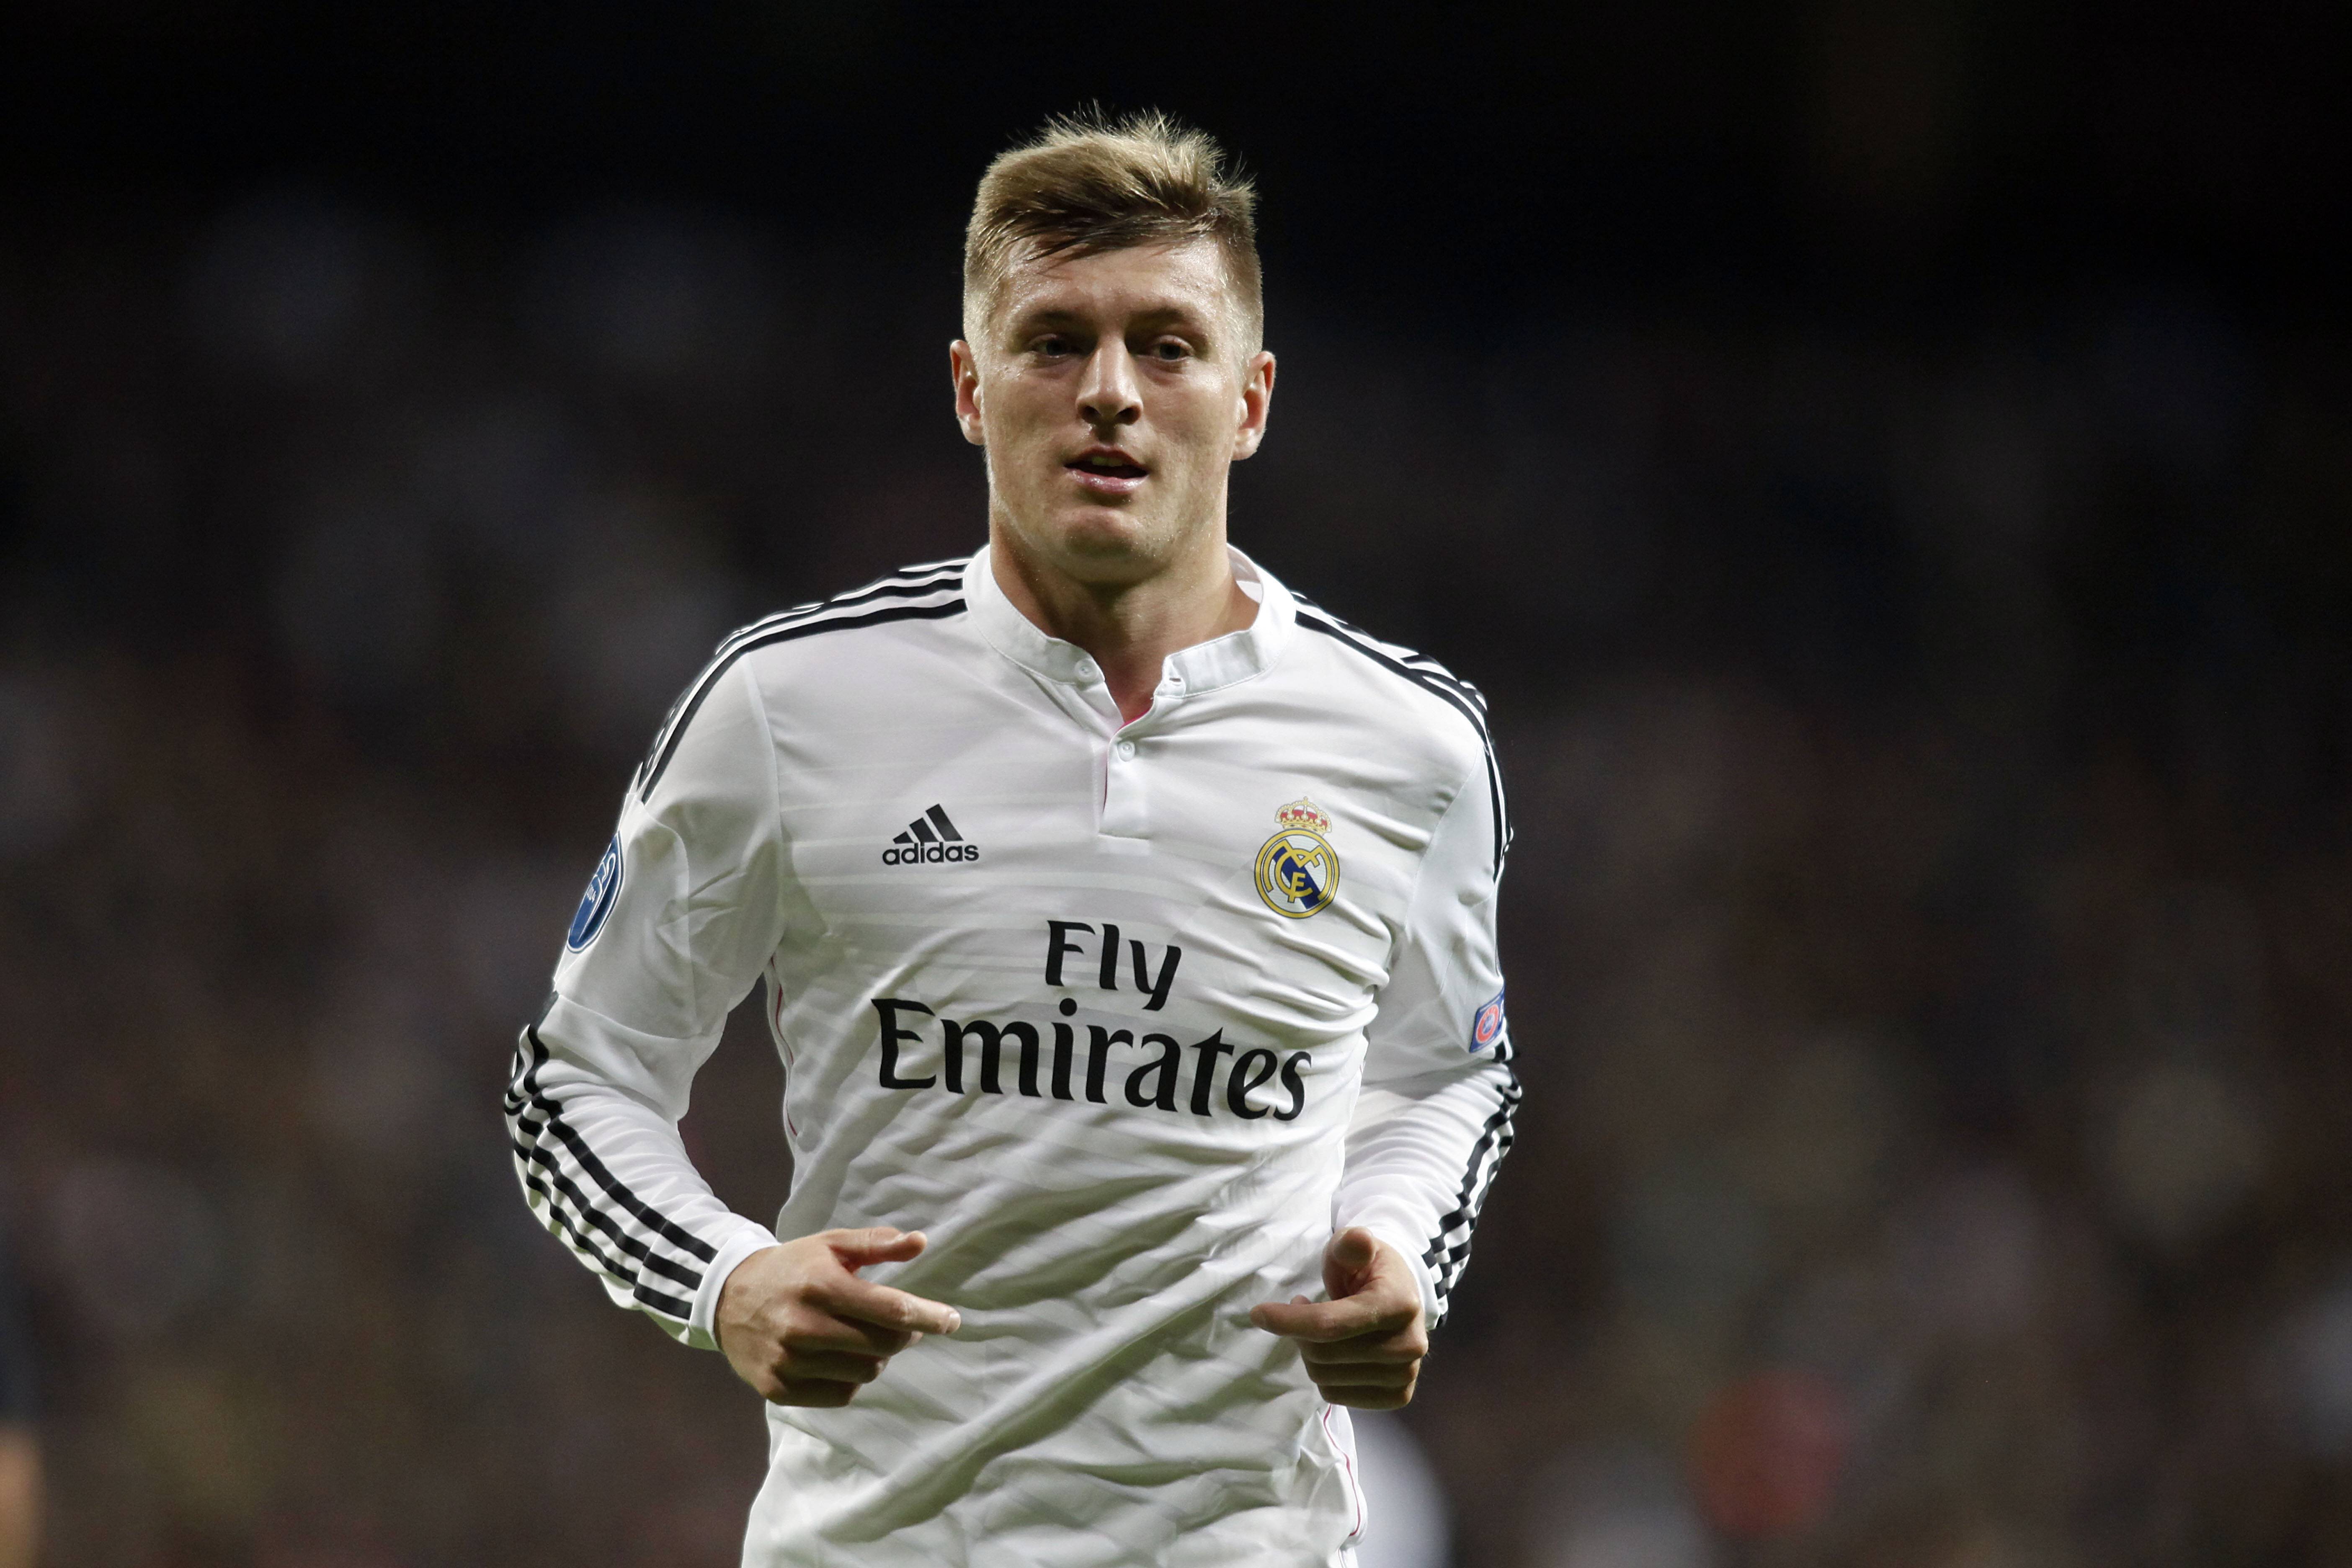 Toni Kroos Wallpapers High Resolution And Quality Download